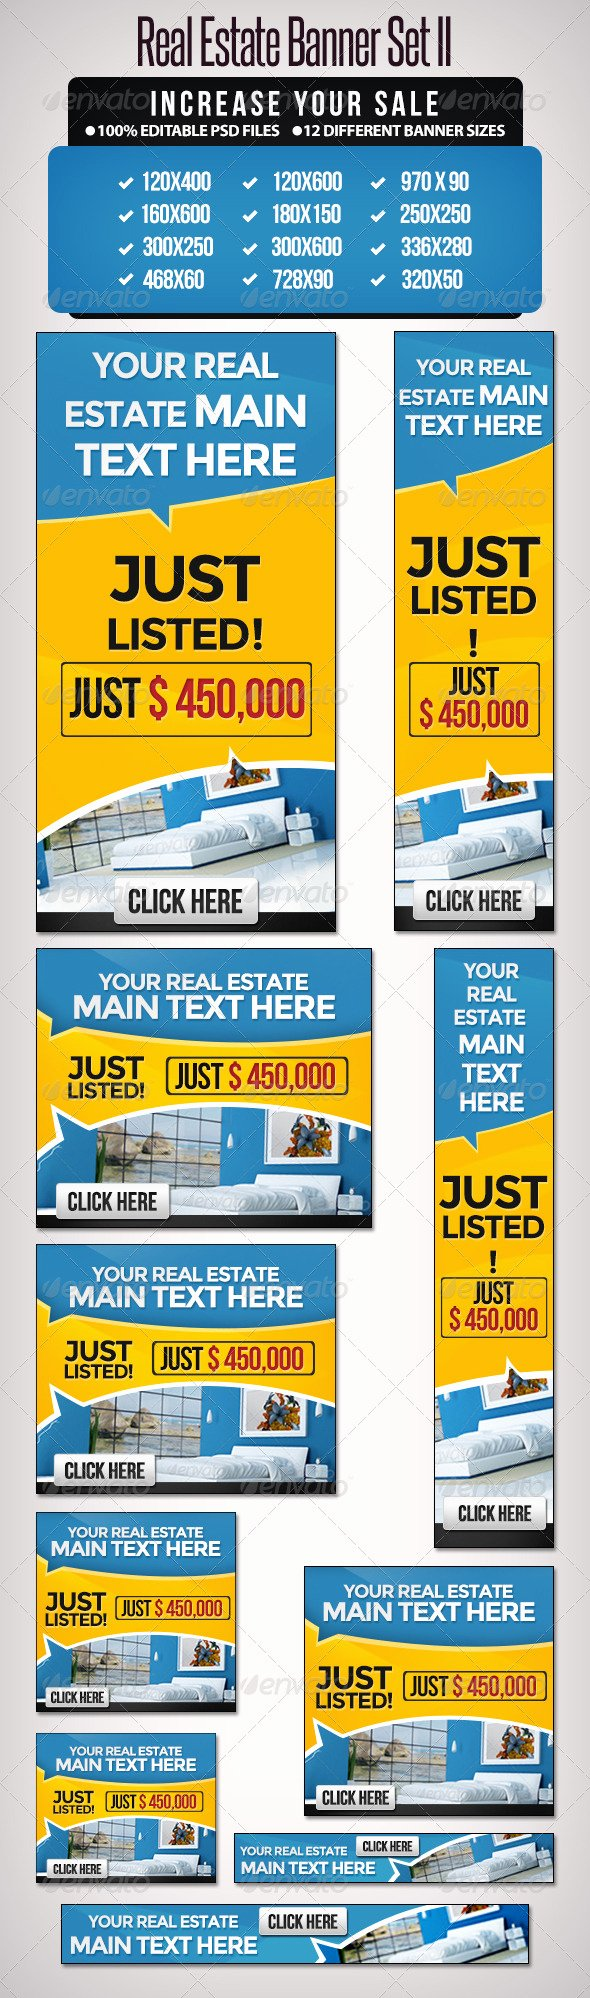 Real Estate Banner Ads Fresh Real Estate Banner Set Ii 12 Sizes by Doto